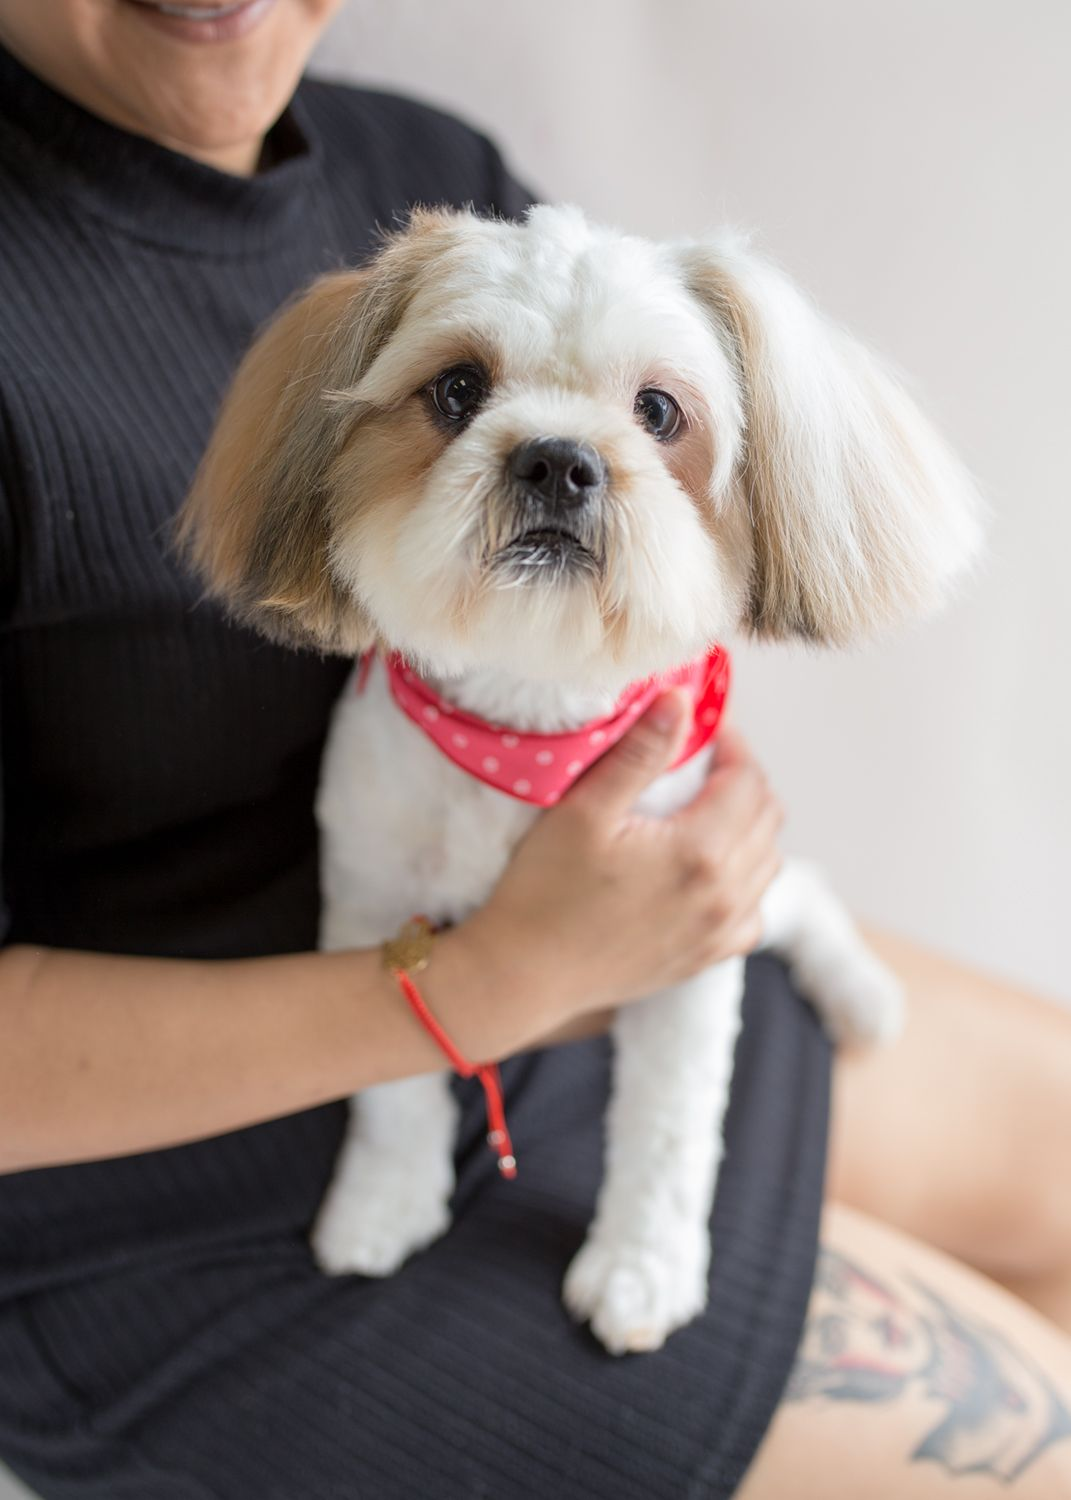 The Best Toy Dog Rescue South Florida And Description In 2020 Rescue Dogs Stop Dog Chewing Dogs